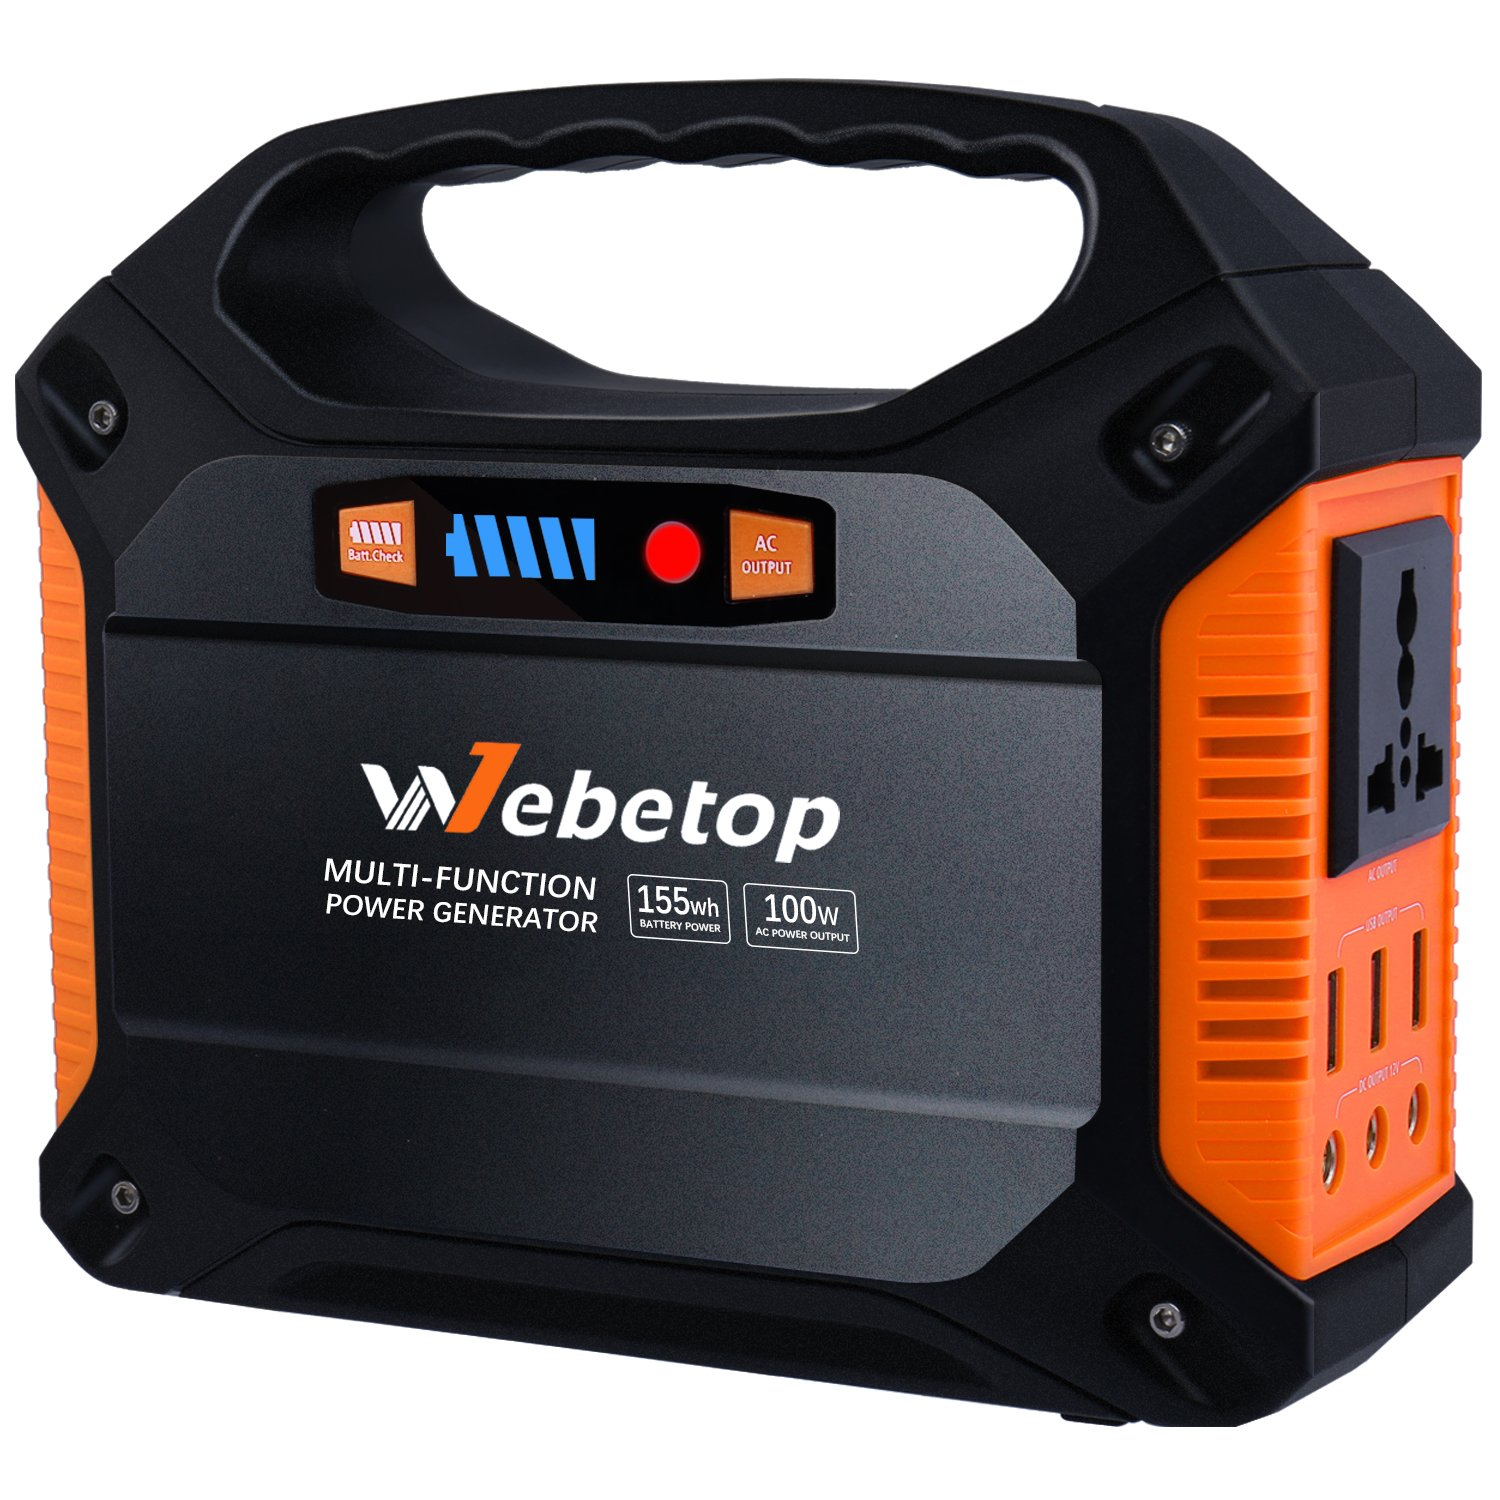 Webetop 155Wh 42000mAh Portable Generator Inverter Battery 100W Camping Emergency Home Use UPS Power